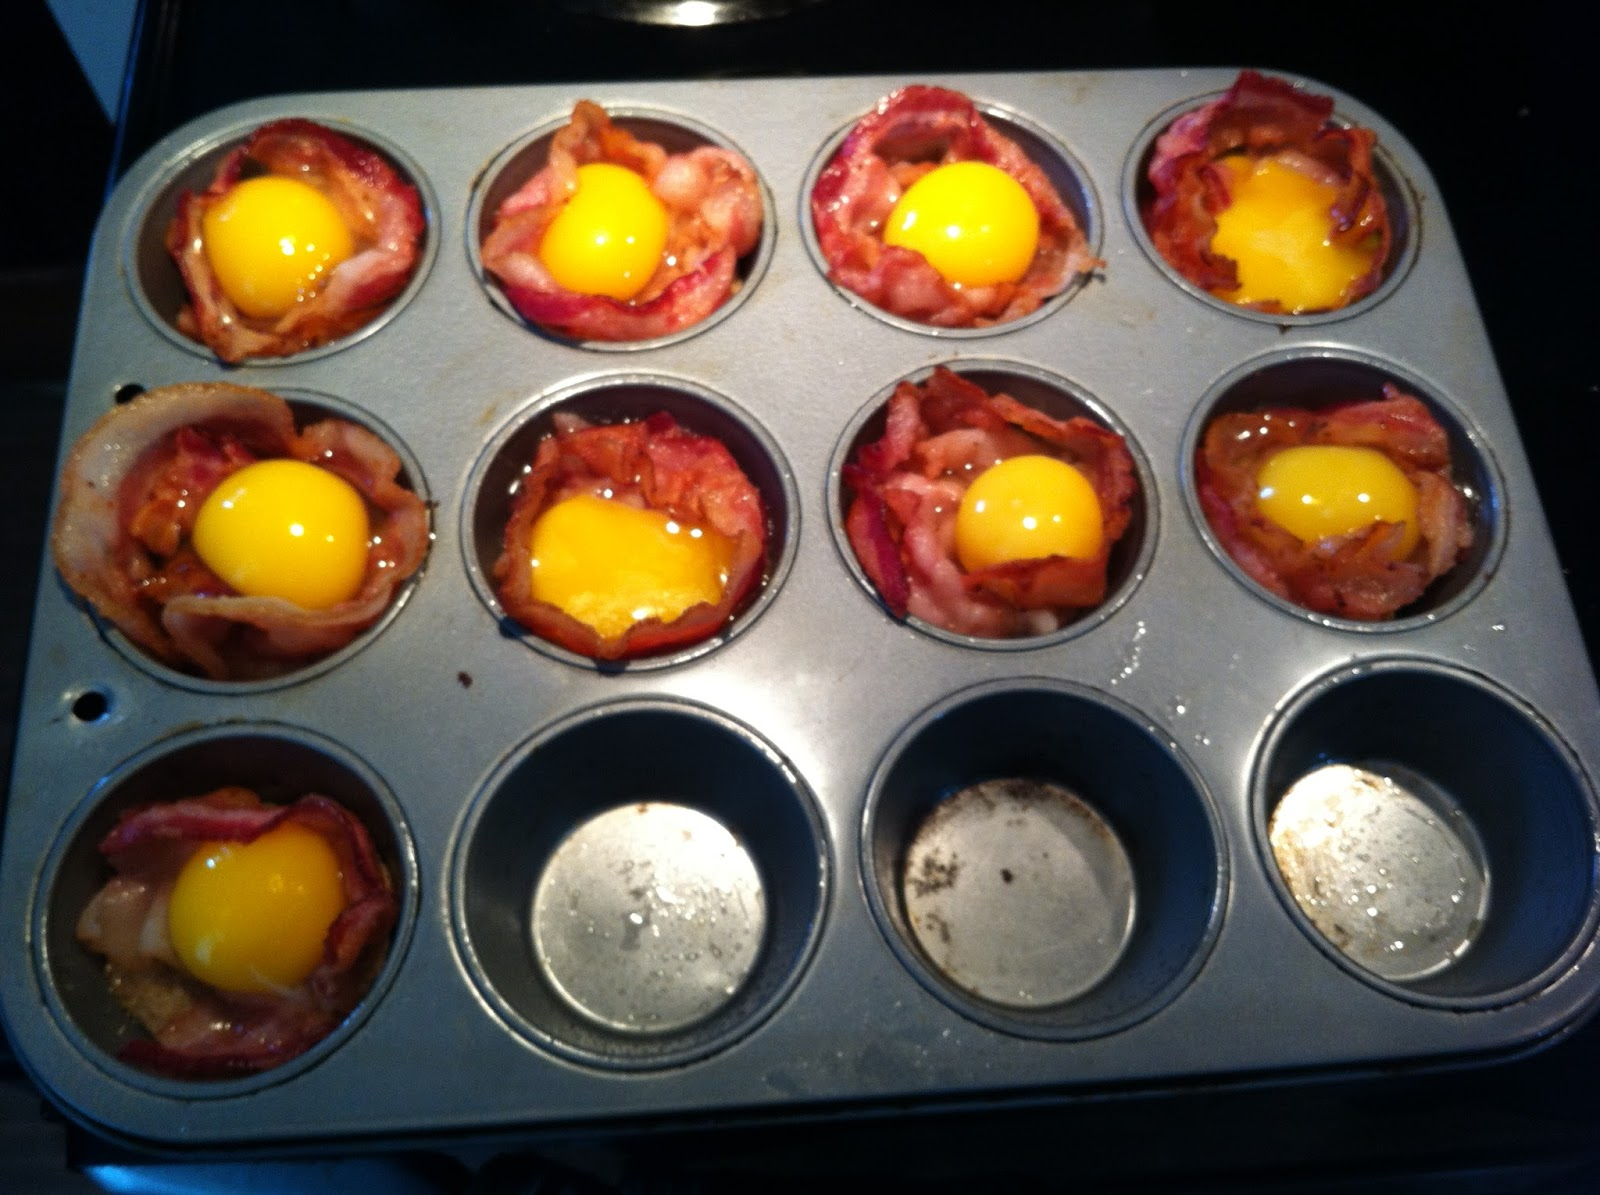 ... per muffin cup 2 slices of bacon per muffin cup 1 egg per muffin cup 1